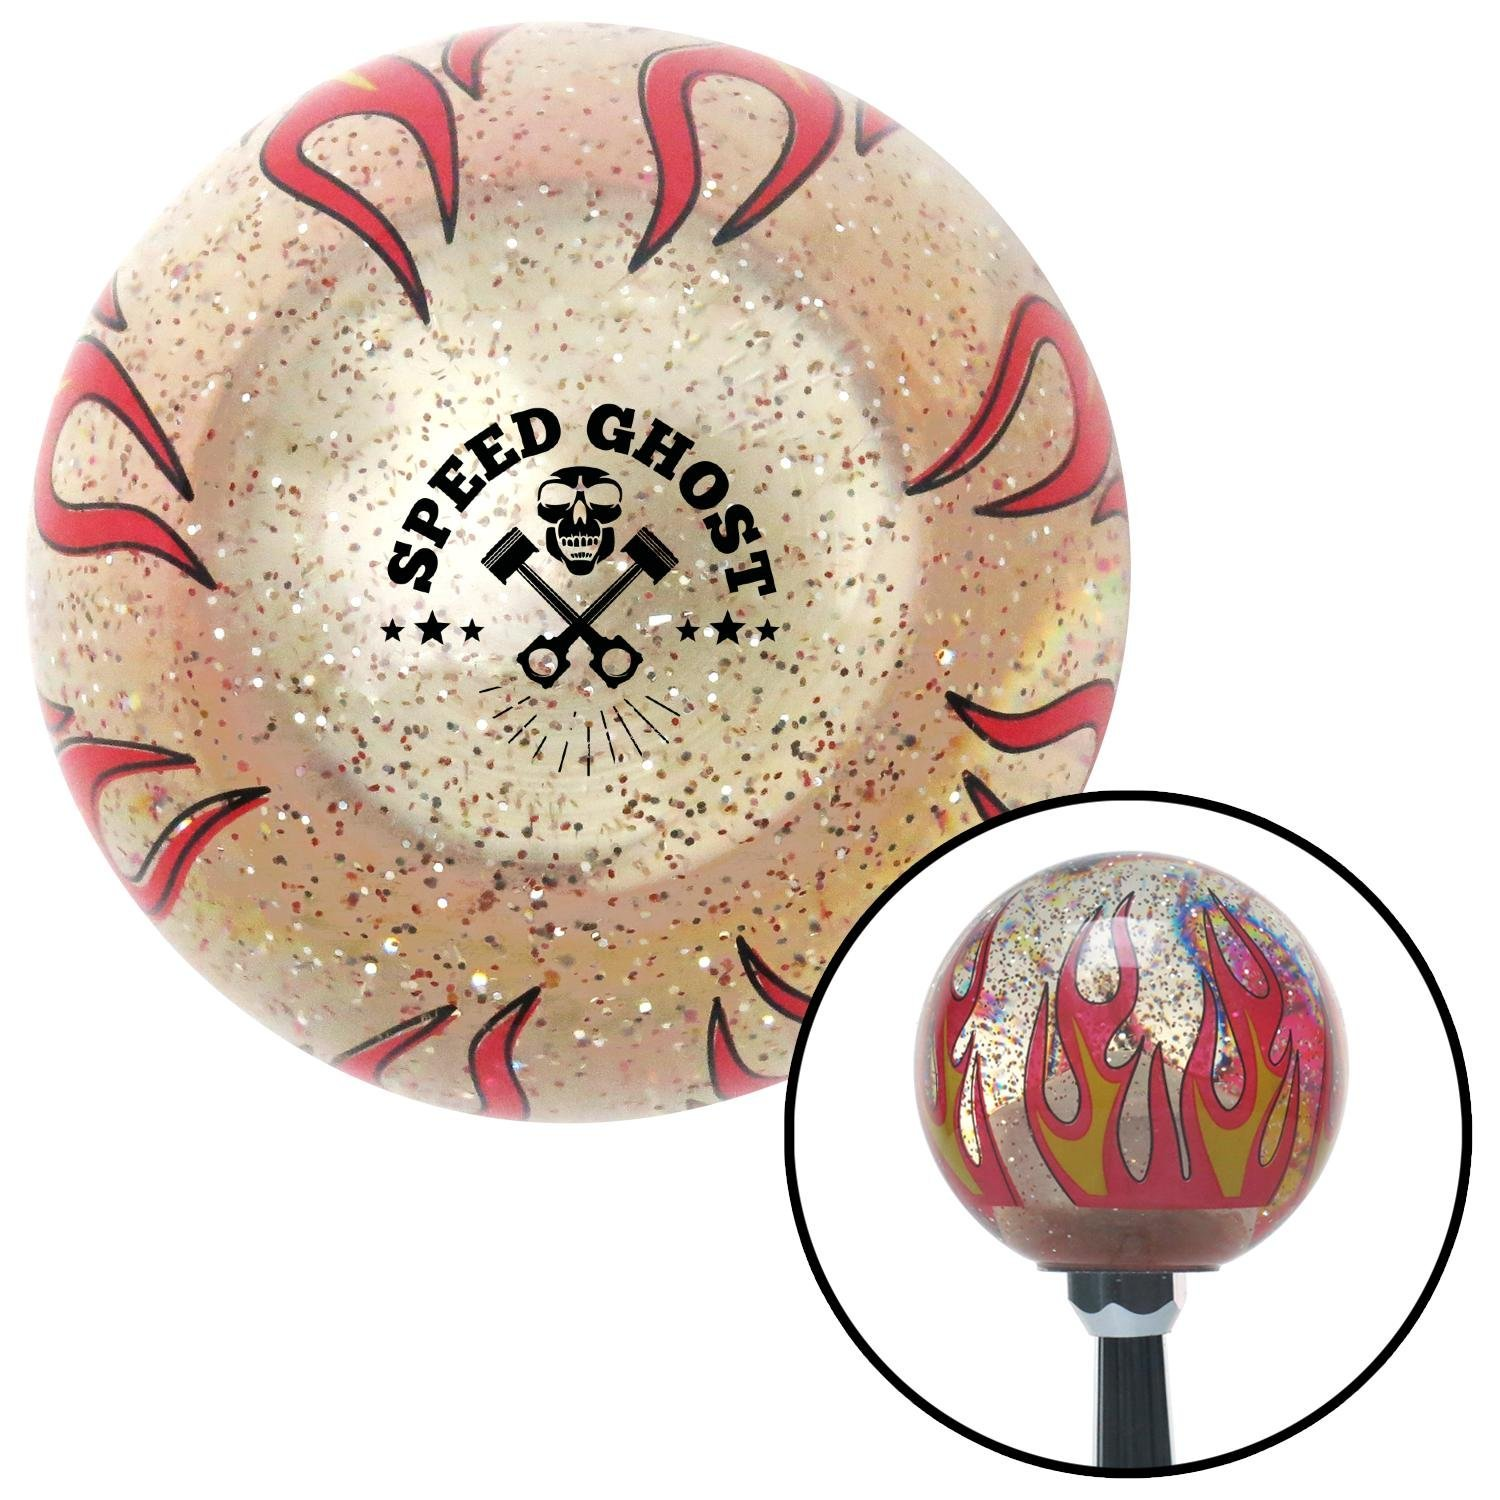 American Shifter 295738 Shift Knob Black Speed Ghost Clear Flame Metal Flake with M16 x 1.5 Insert